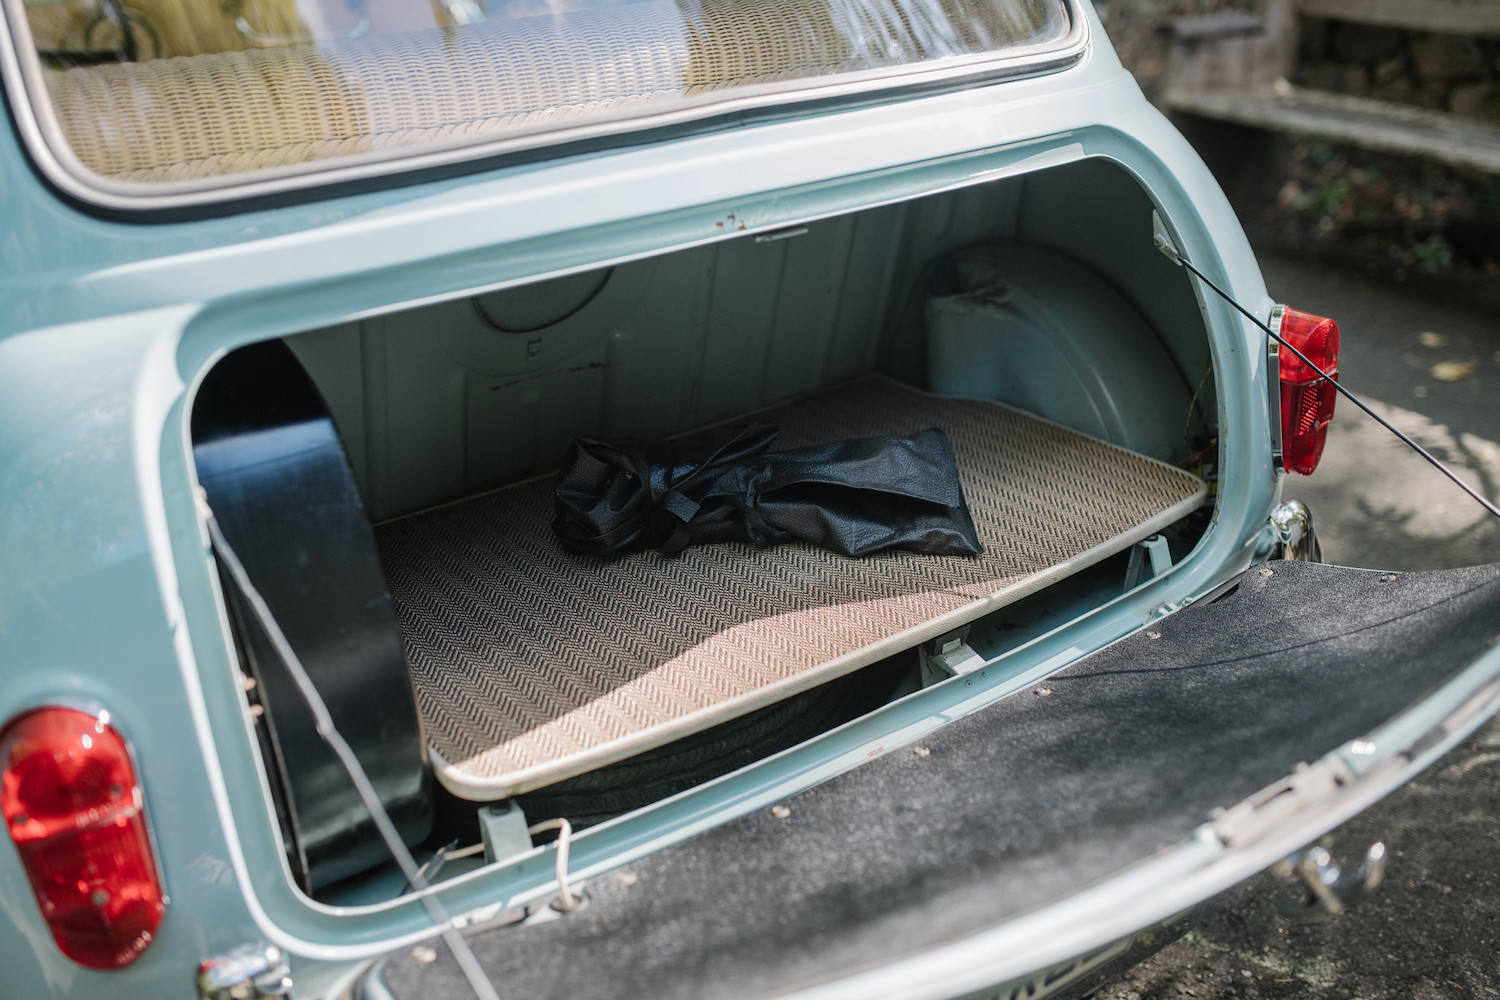 1962 Austin Mini Beach Car open trunk